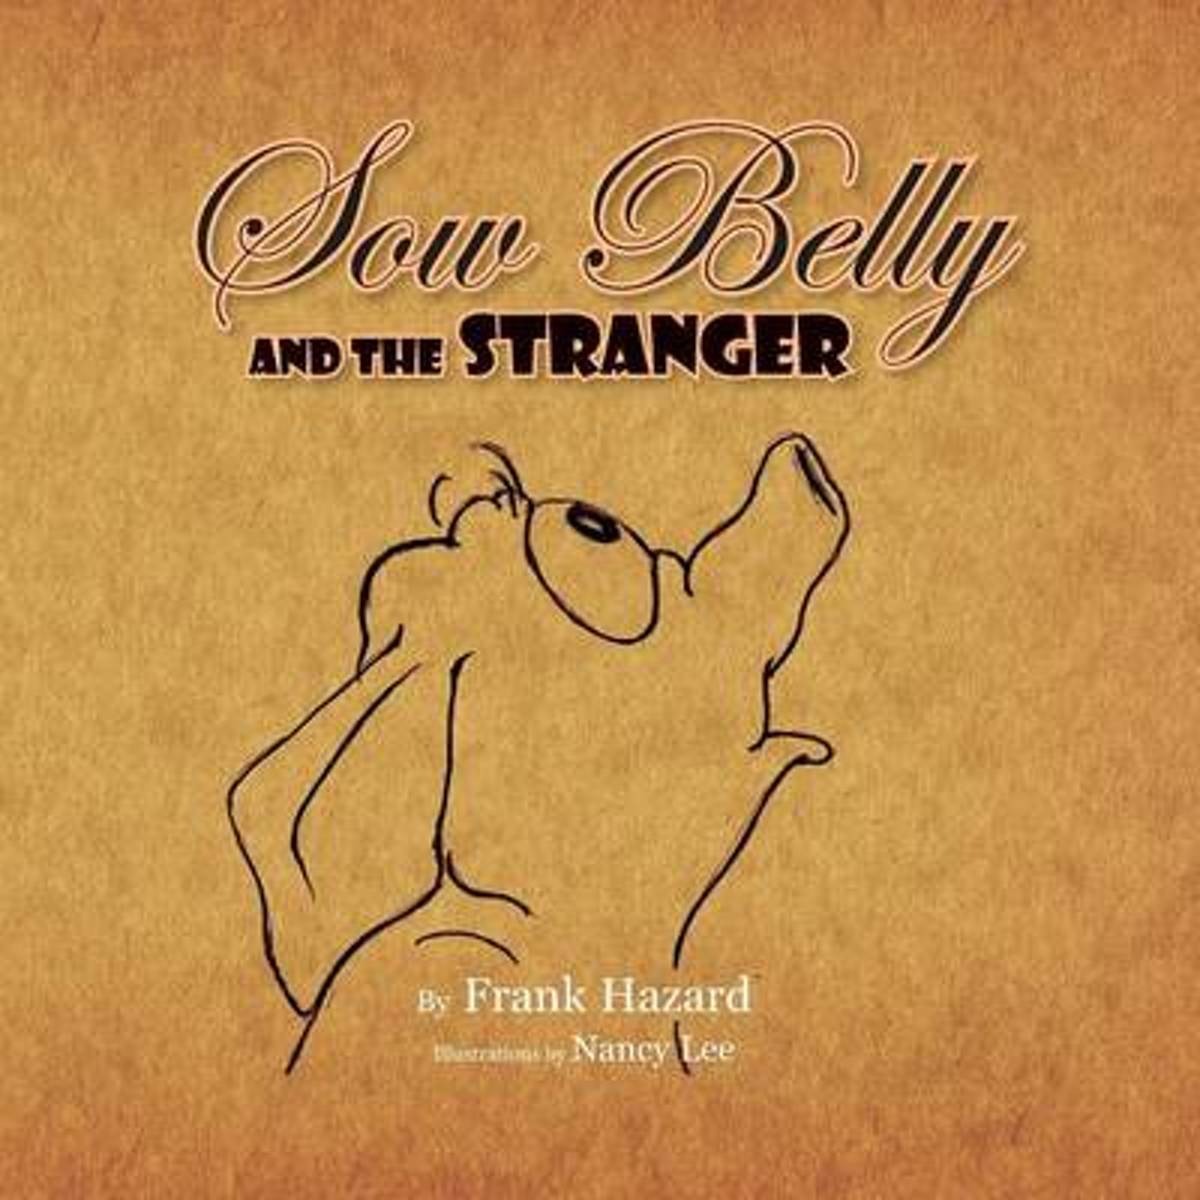 Sow Belly and the Stranger